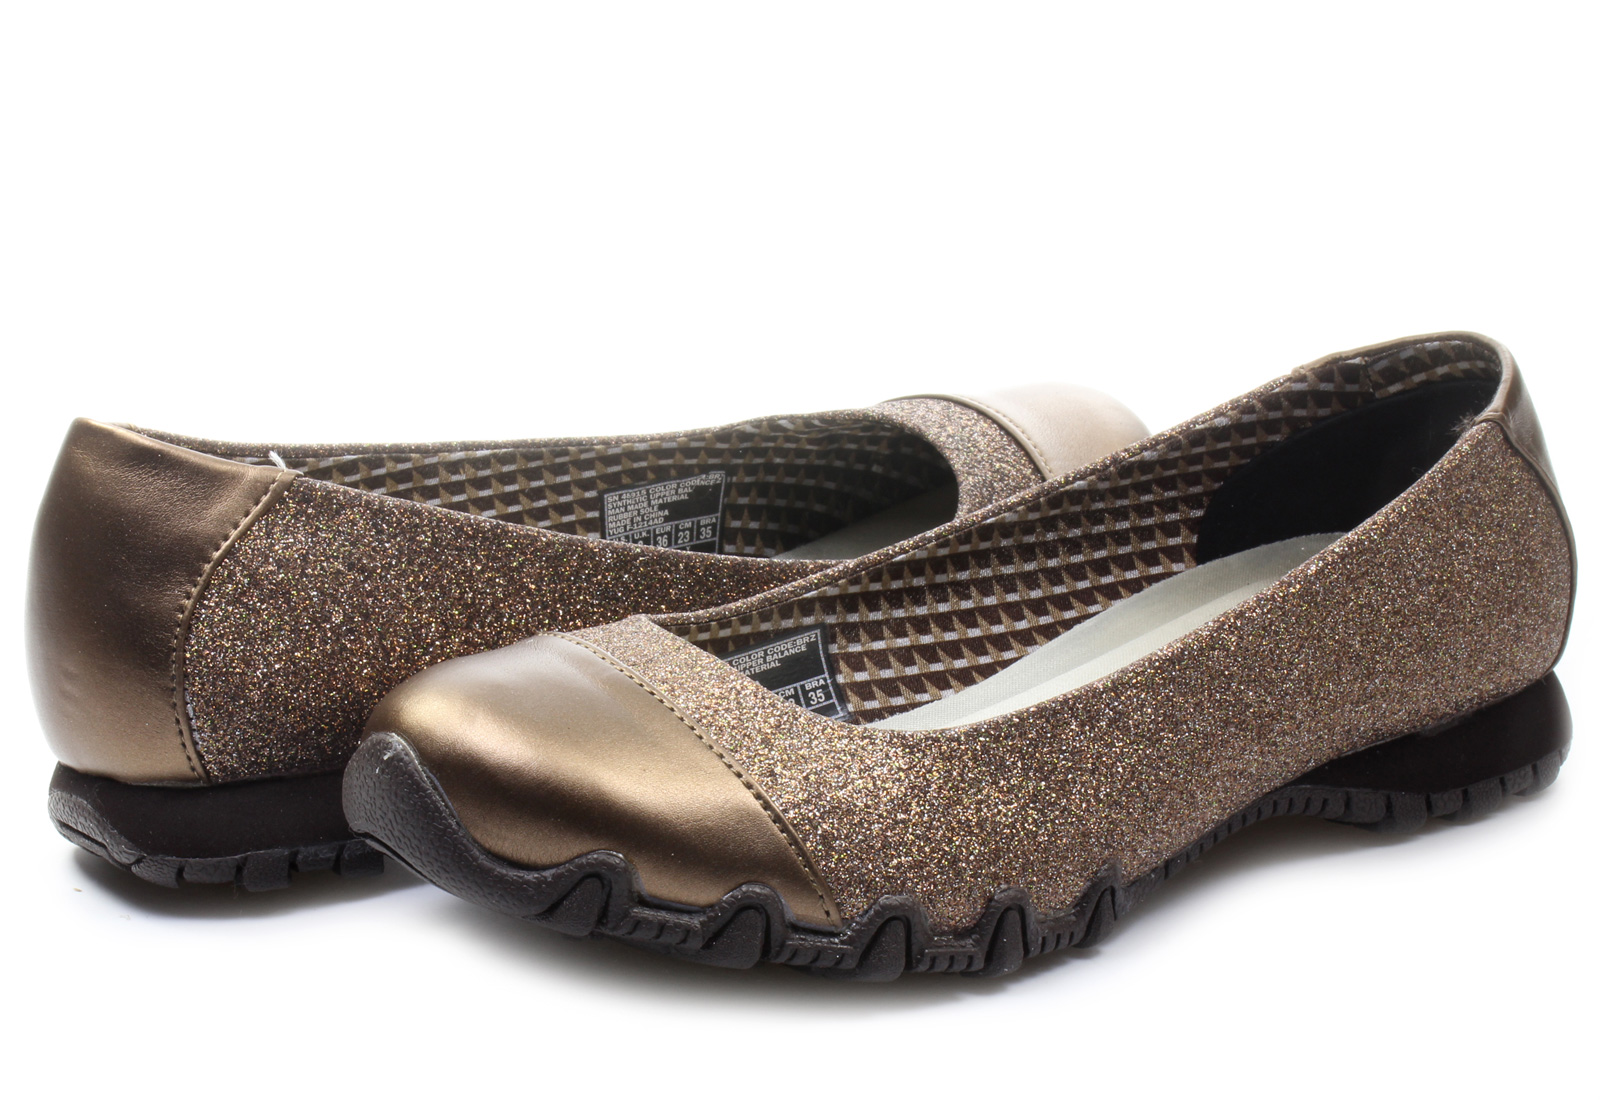 Skechers Ballerinas - Glitzy Sparkle - 48915-brz - Online shop for  sneakers, shoes and boots